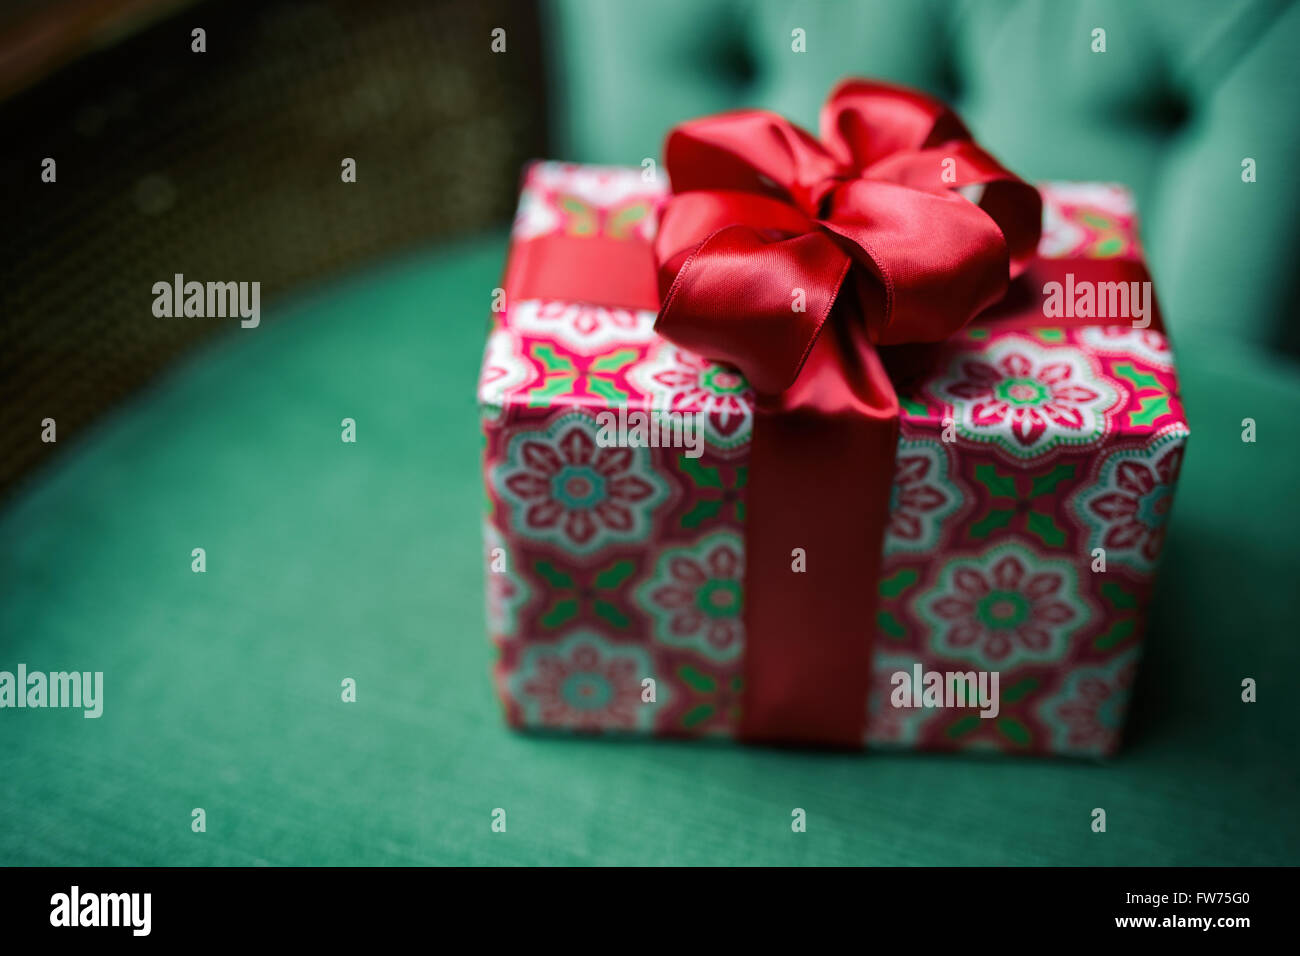 small wrapped christmas gift